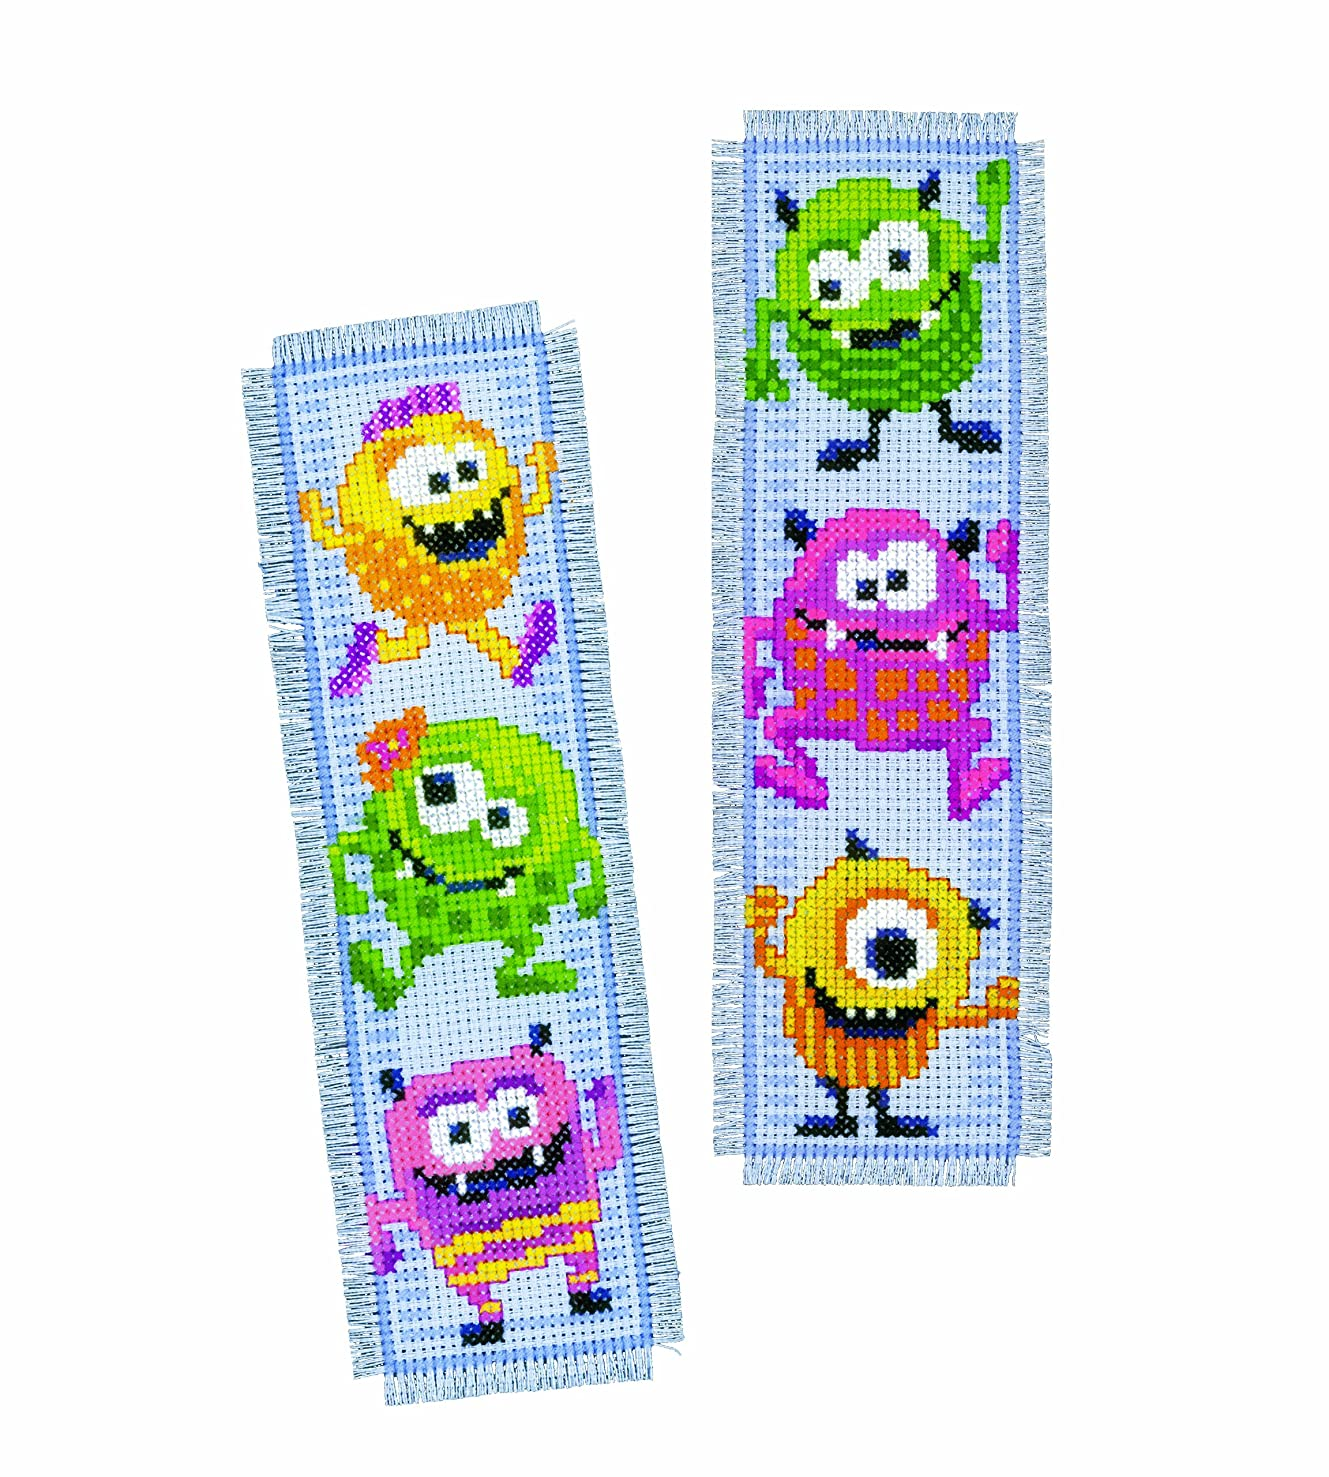 Vervaco 14 Count Little Monsters Bookmarks on Aida Counted Cross Stitch Kit (Set of 2), 2.5